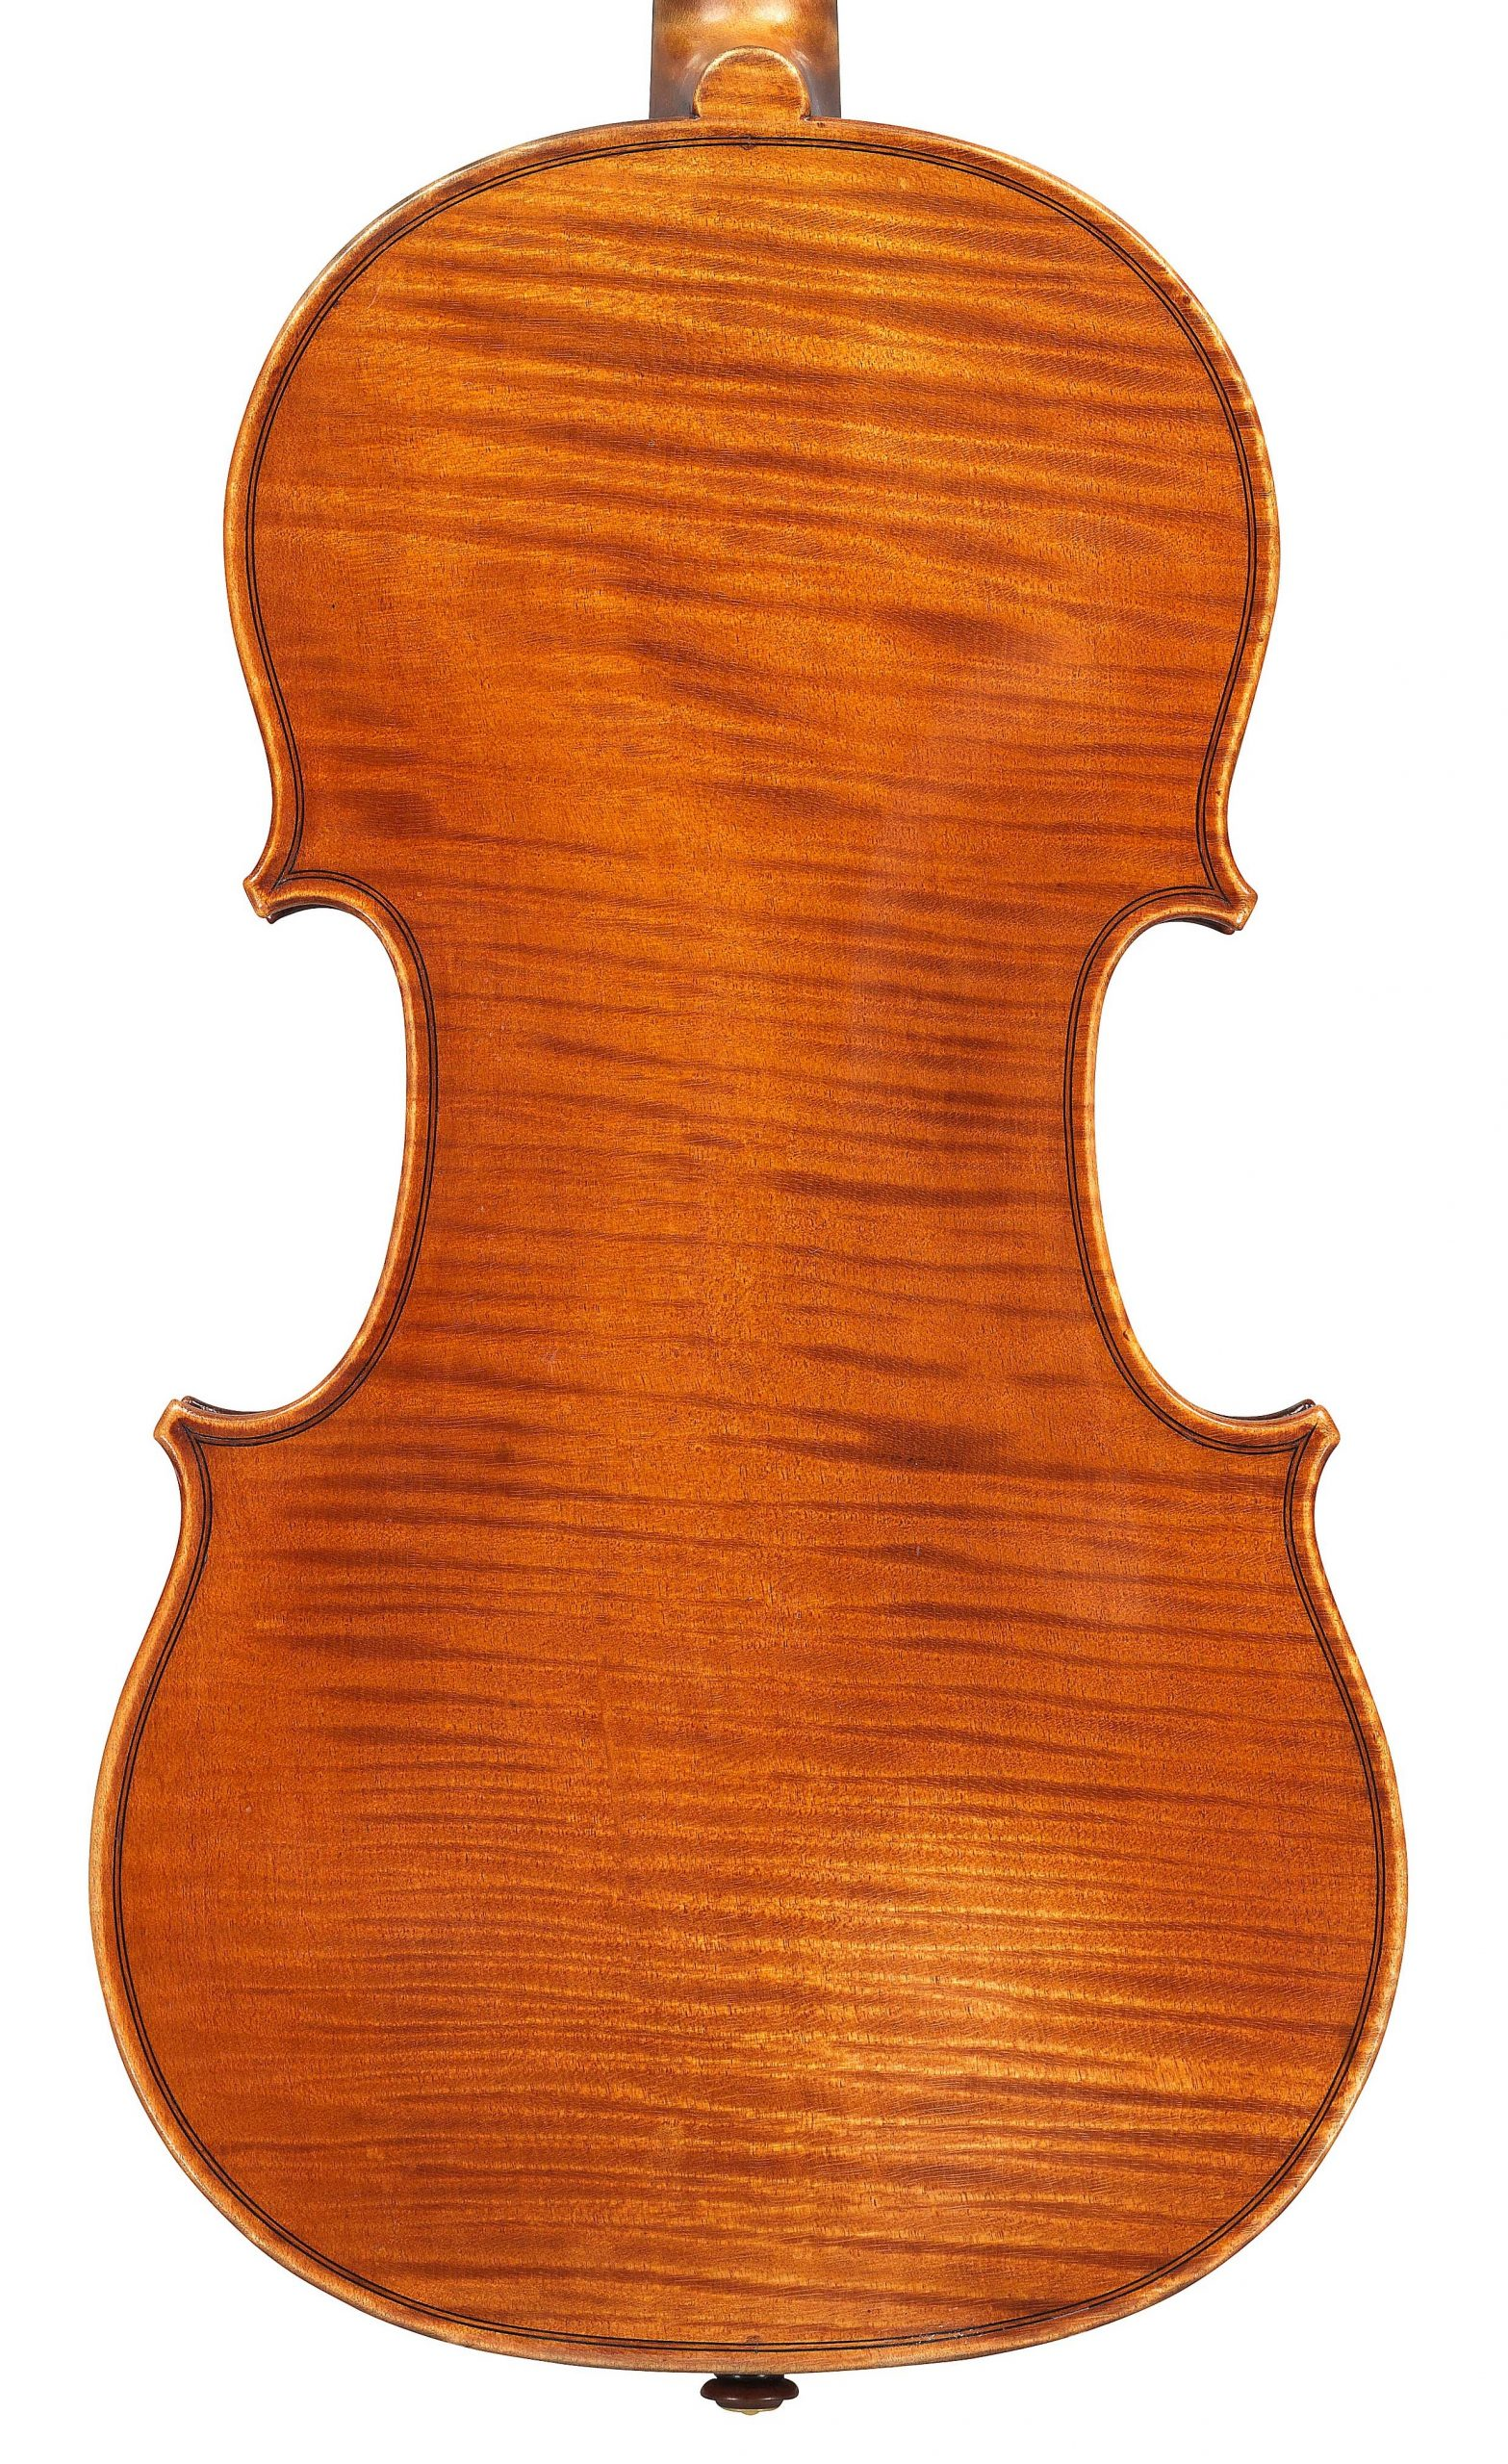 Back of violin by JB Vuillaume, ex-Sin, dated 1871, exhibited by Ingles & Hayday at Sotheby's in 2012